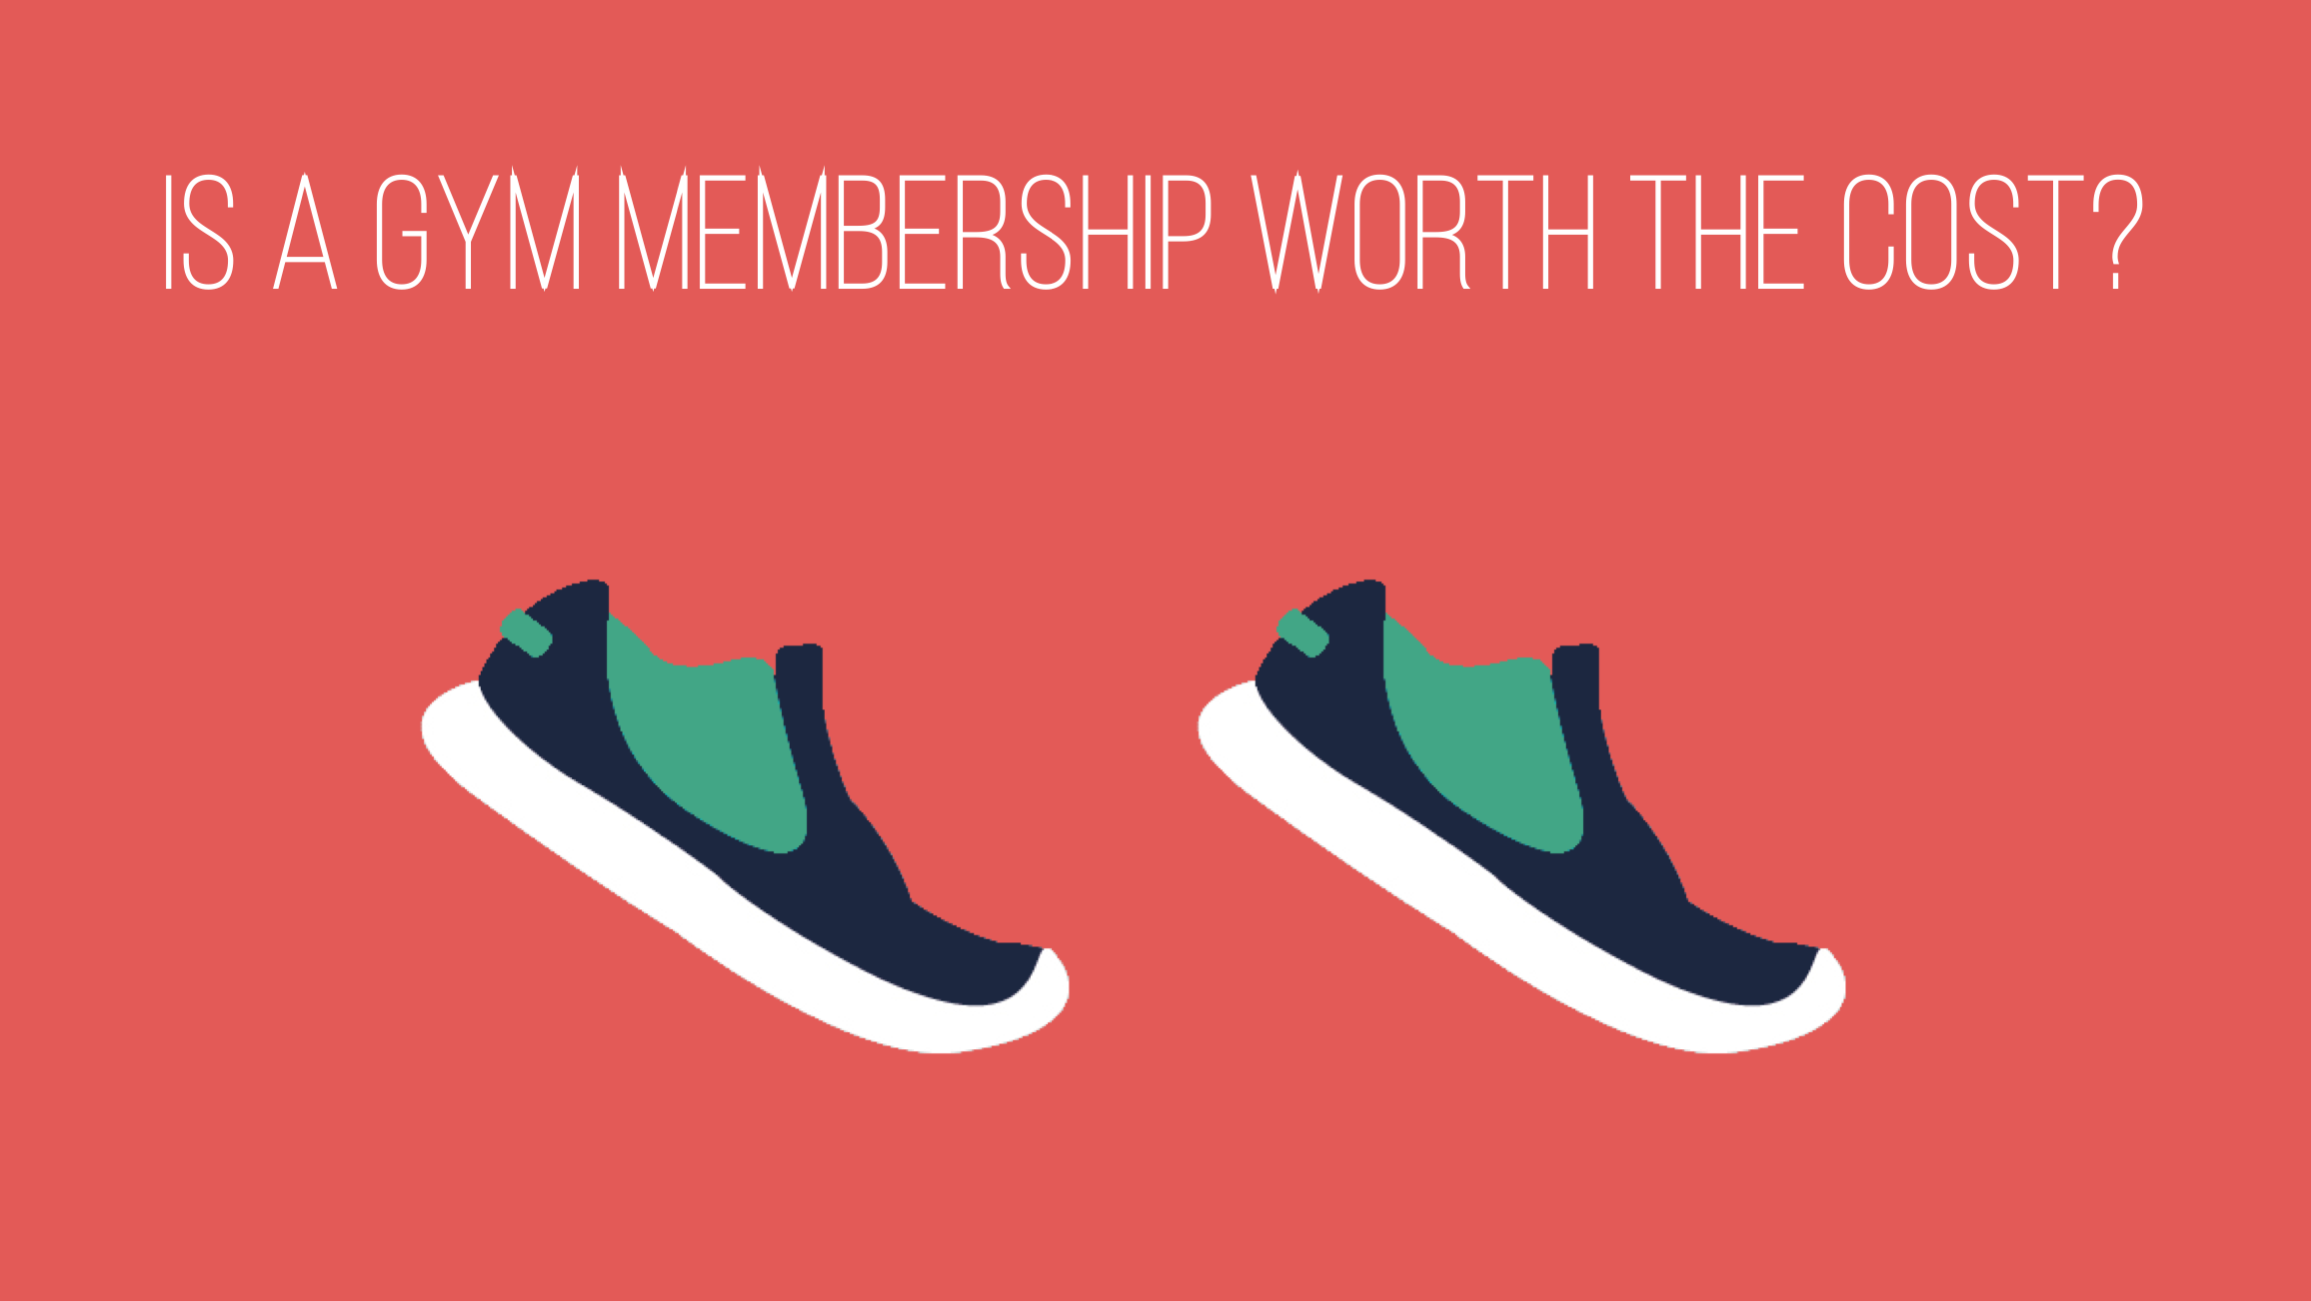 Is a gym membership worth the cost?